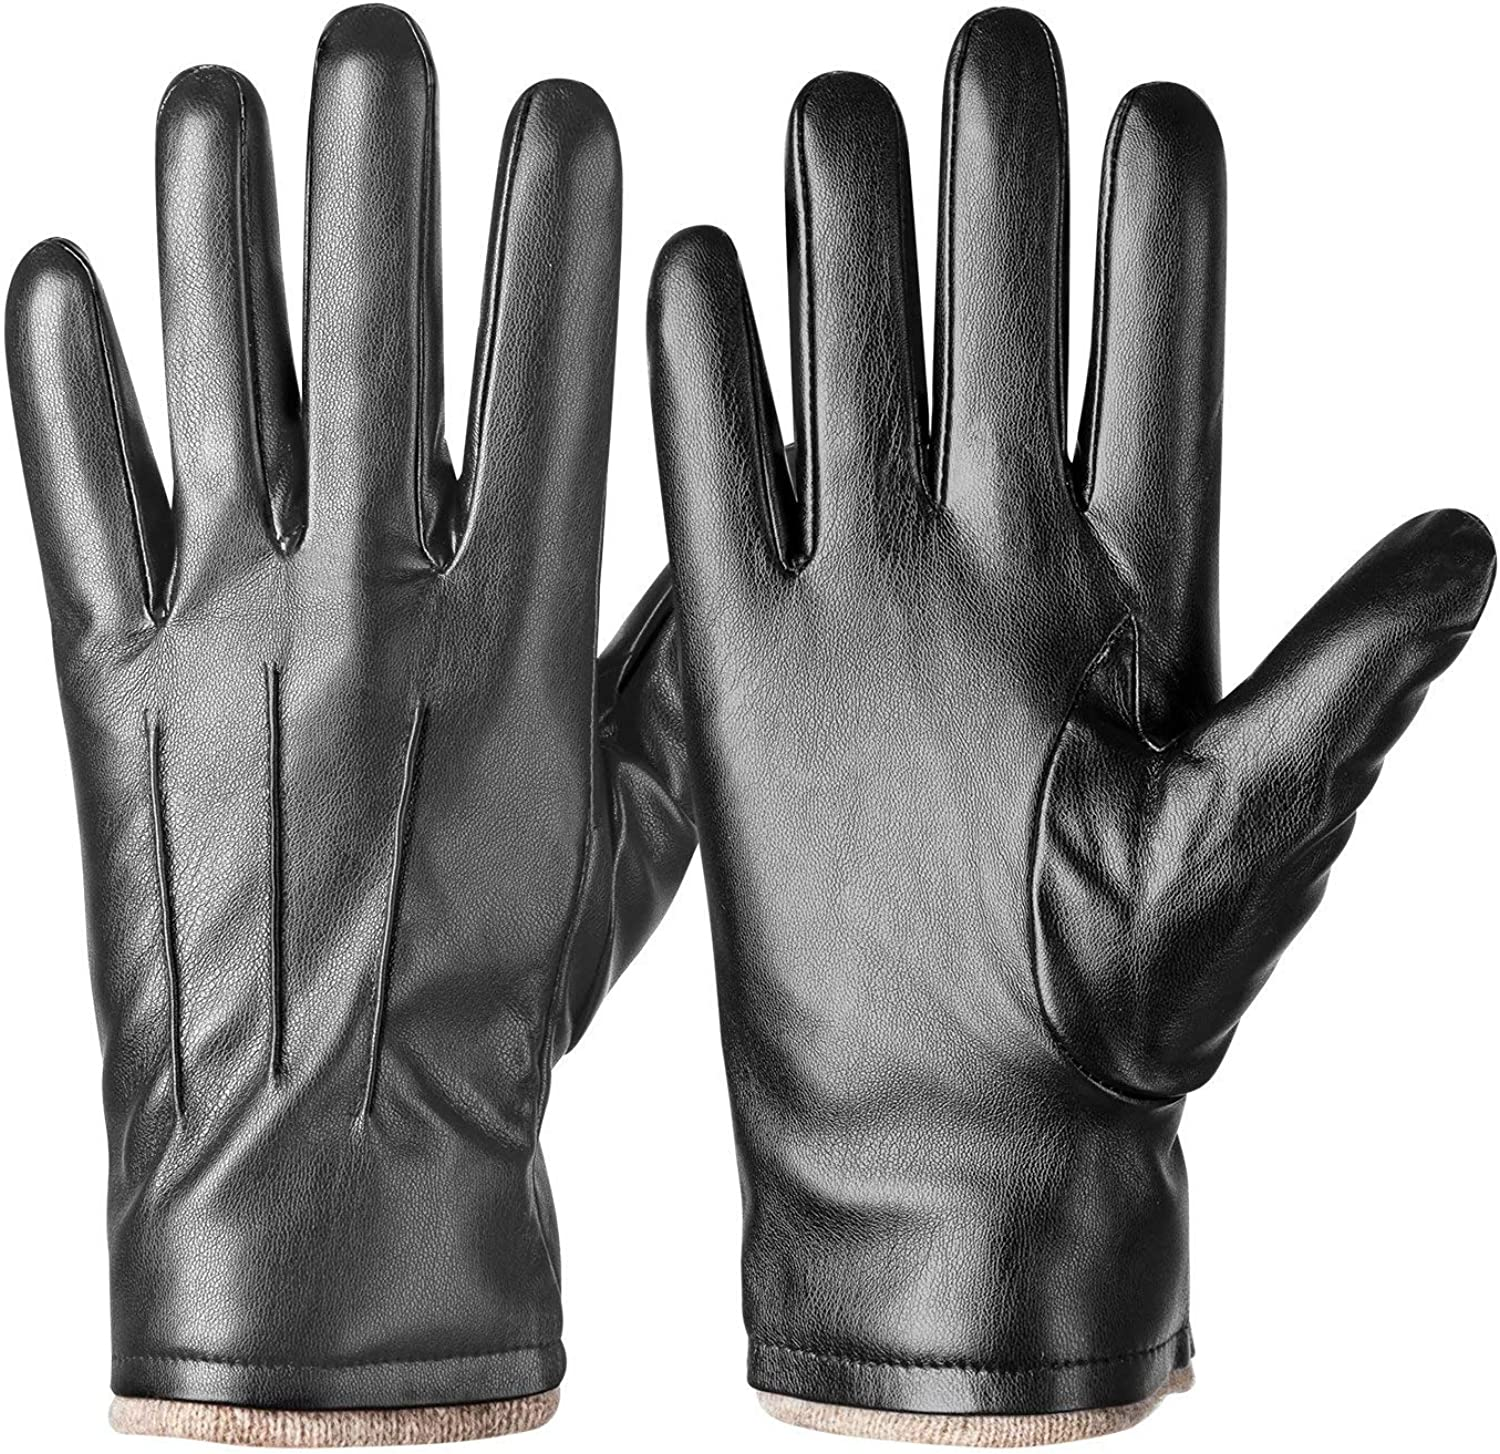 Mens Touch-Screen Genuine Leather Thermal Boys Winter Designer Driving Gloves